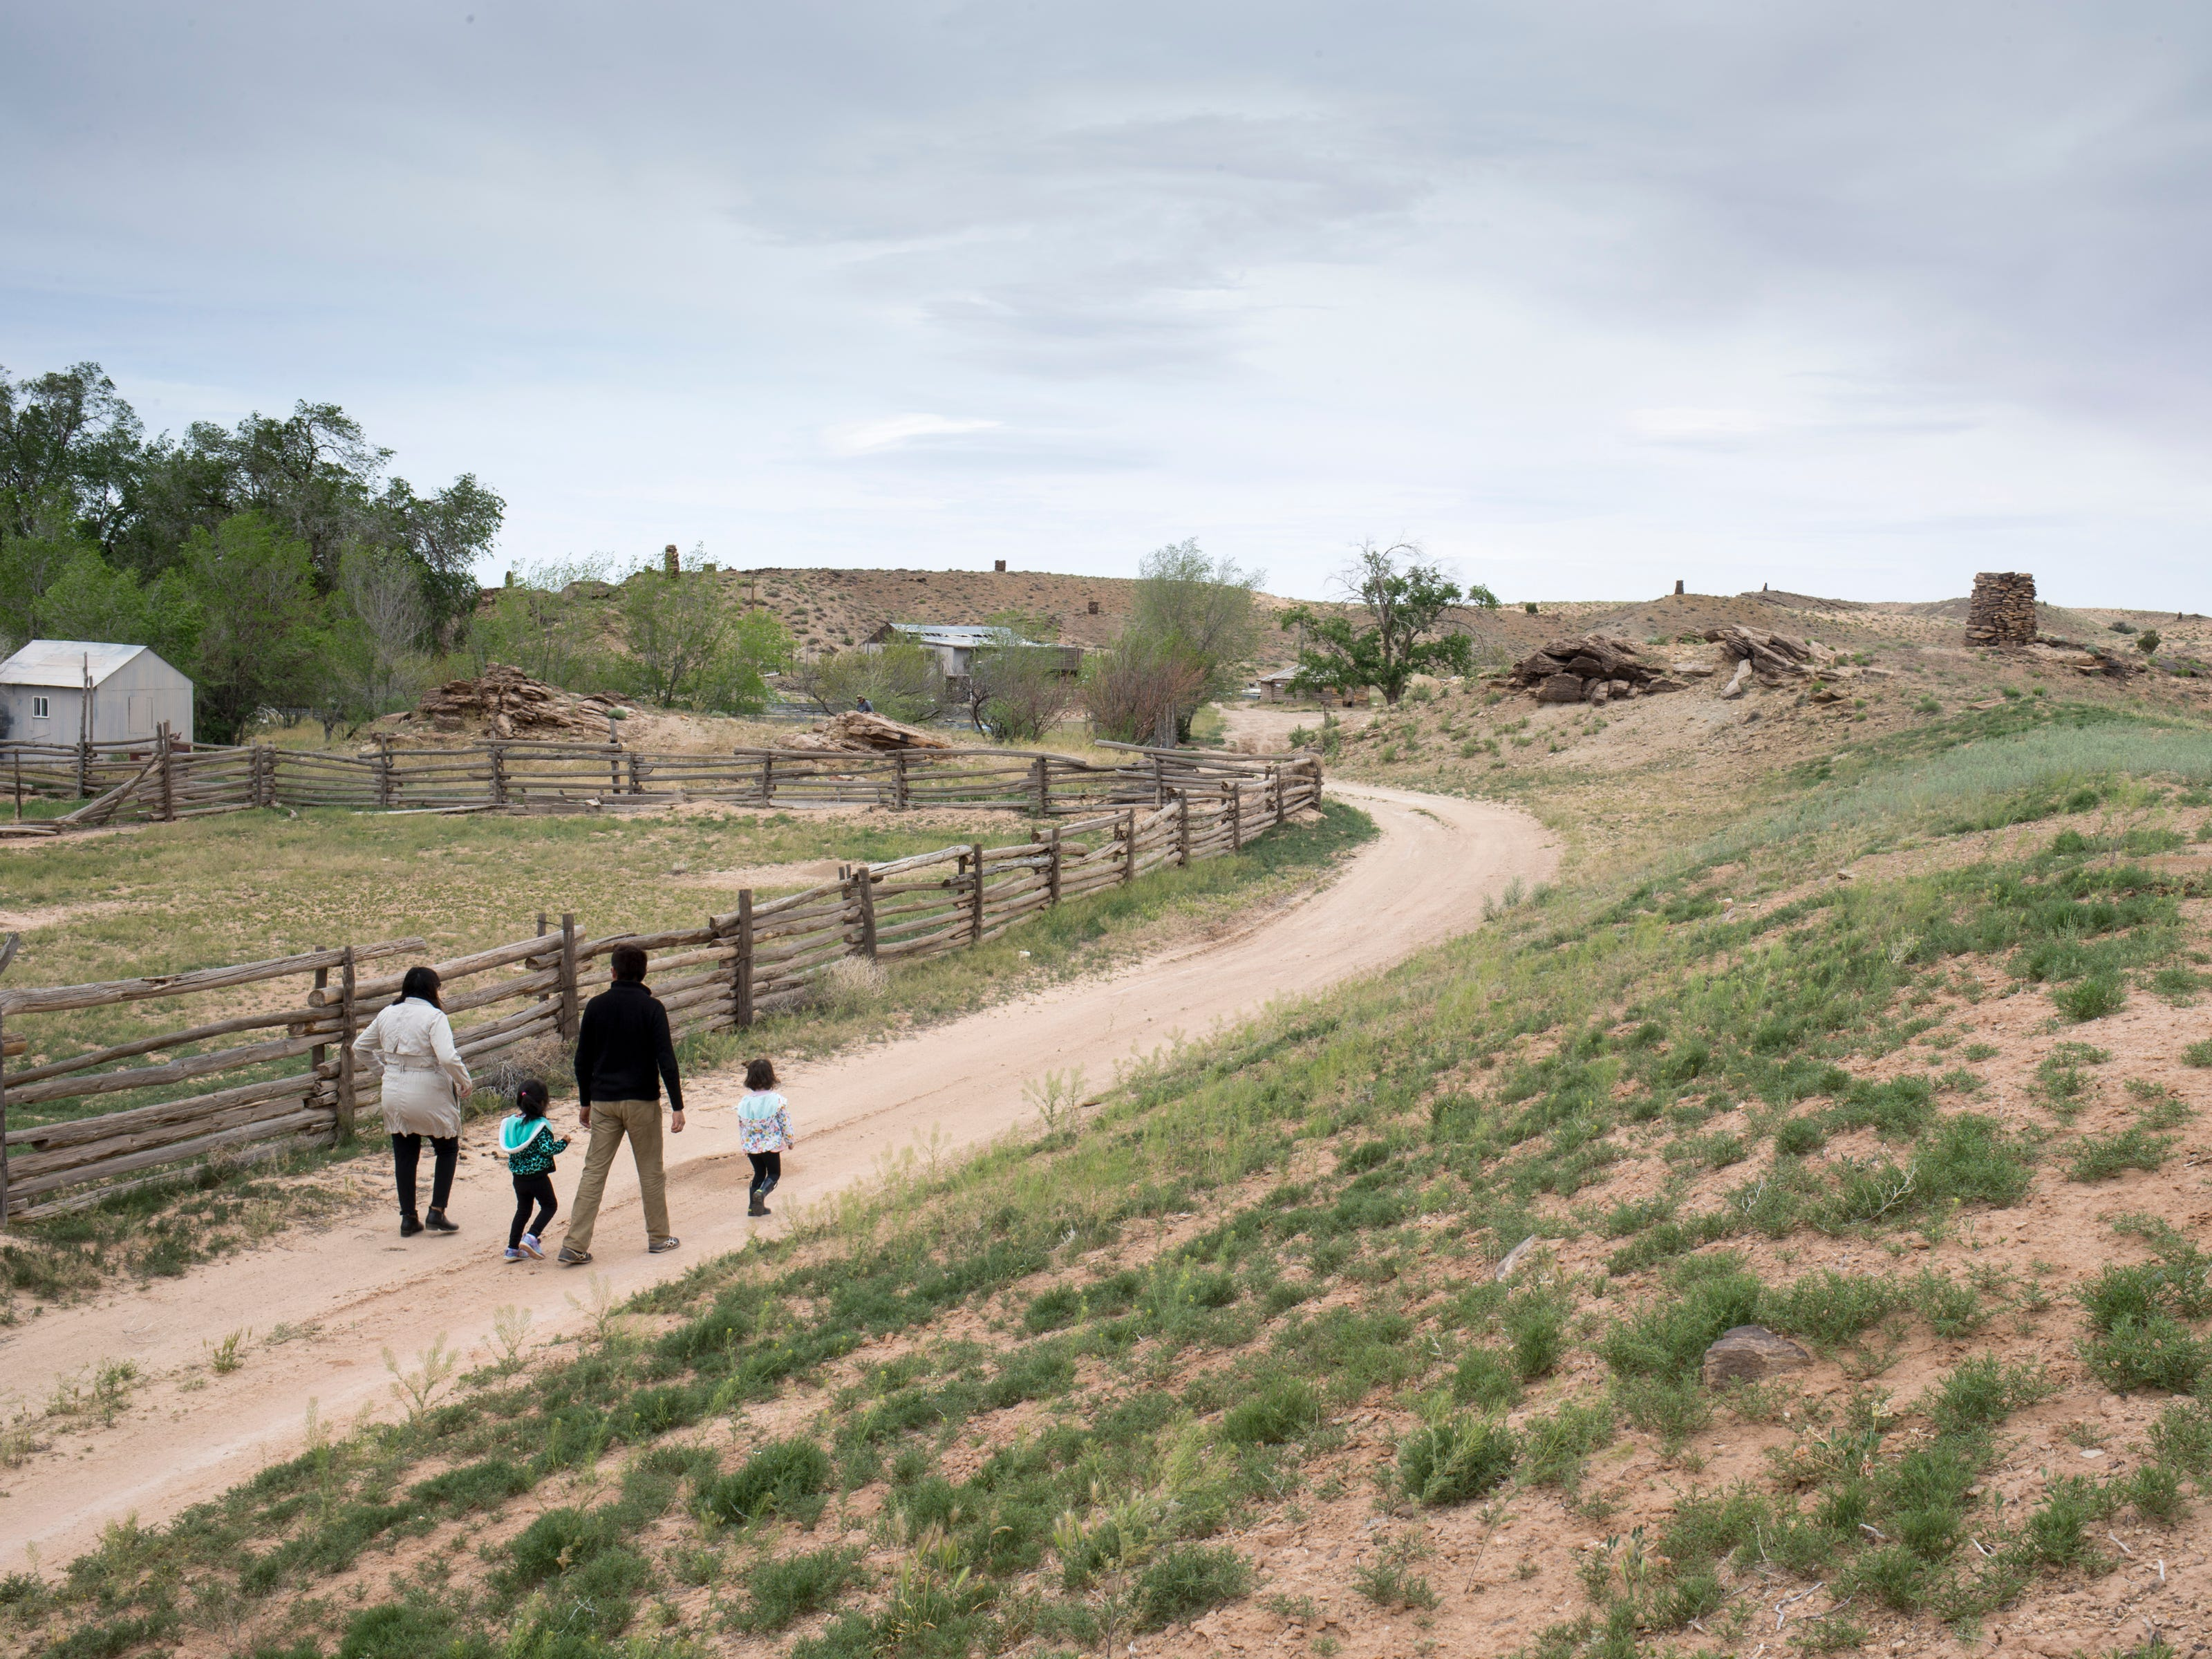 The Begaye family farm in the Salt Water Canyon, east of Many Farms, Ariz., on May 16, 2019.